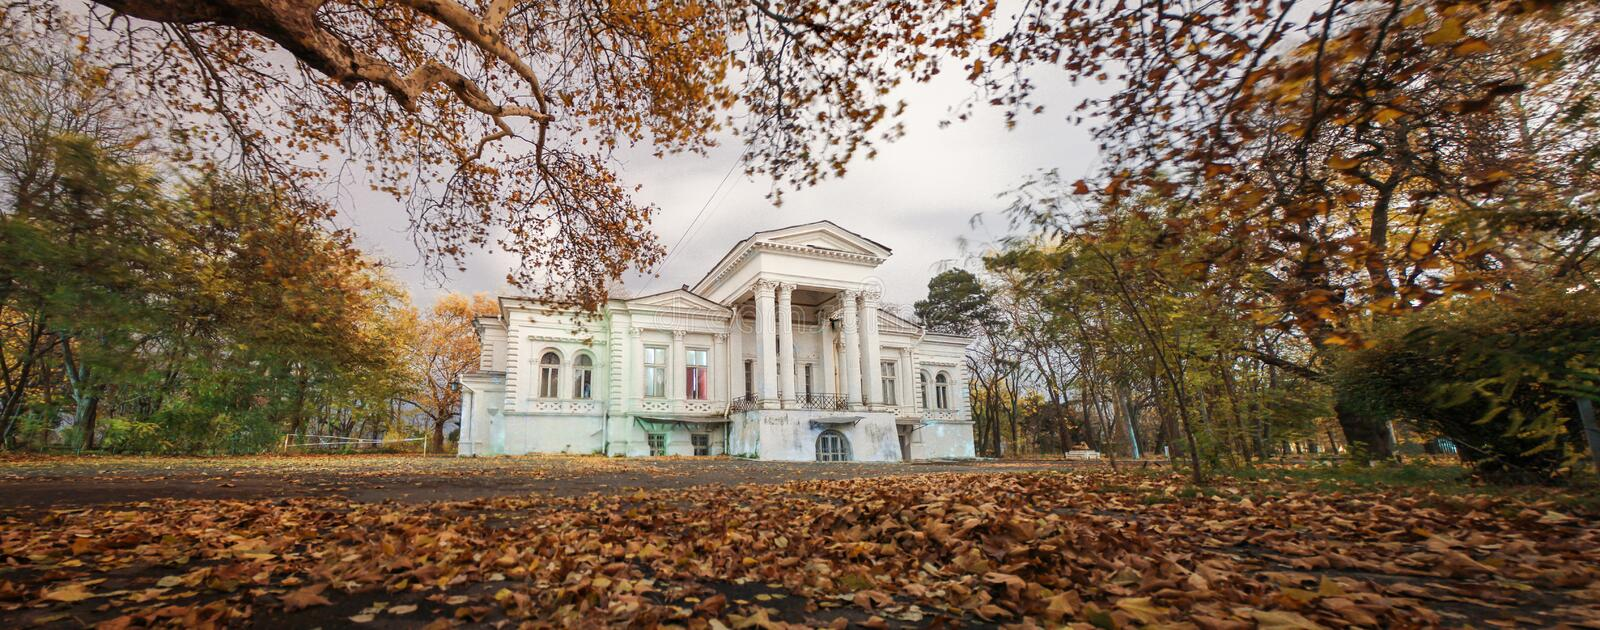 old abandoned haunted house. Fallen foliage stock images